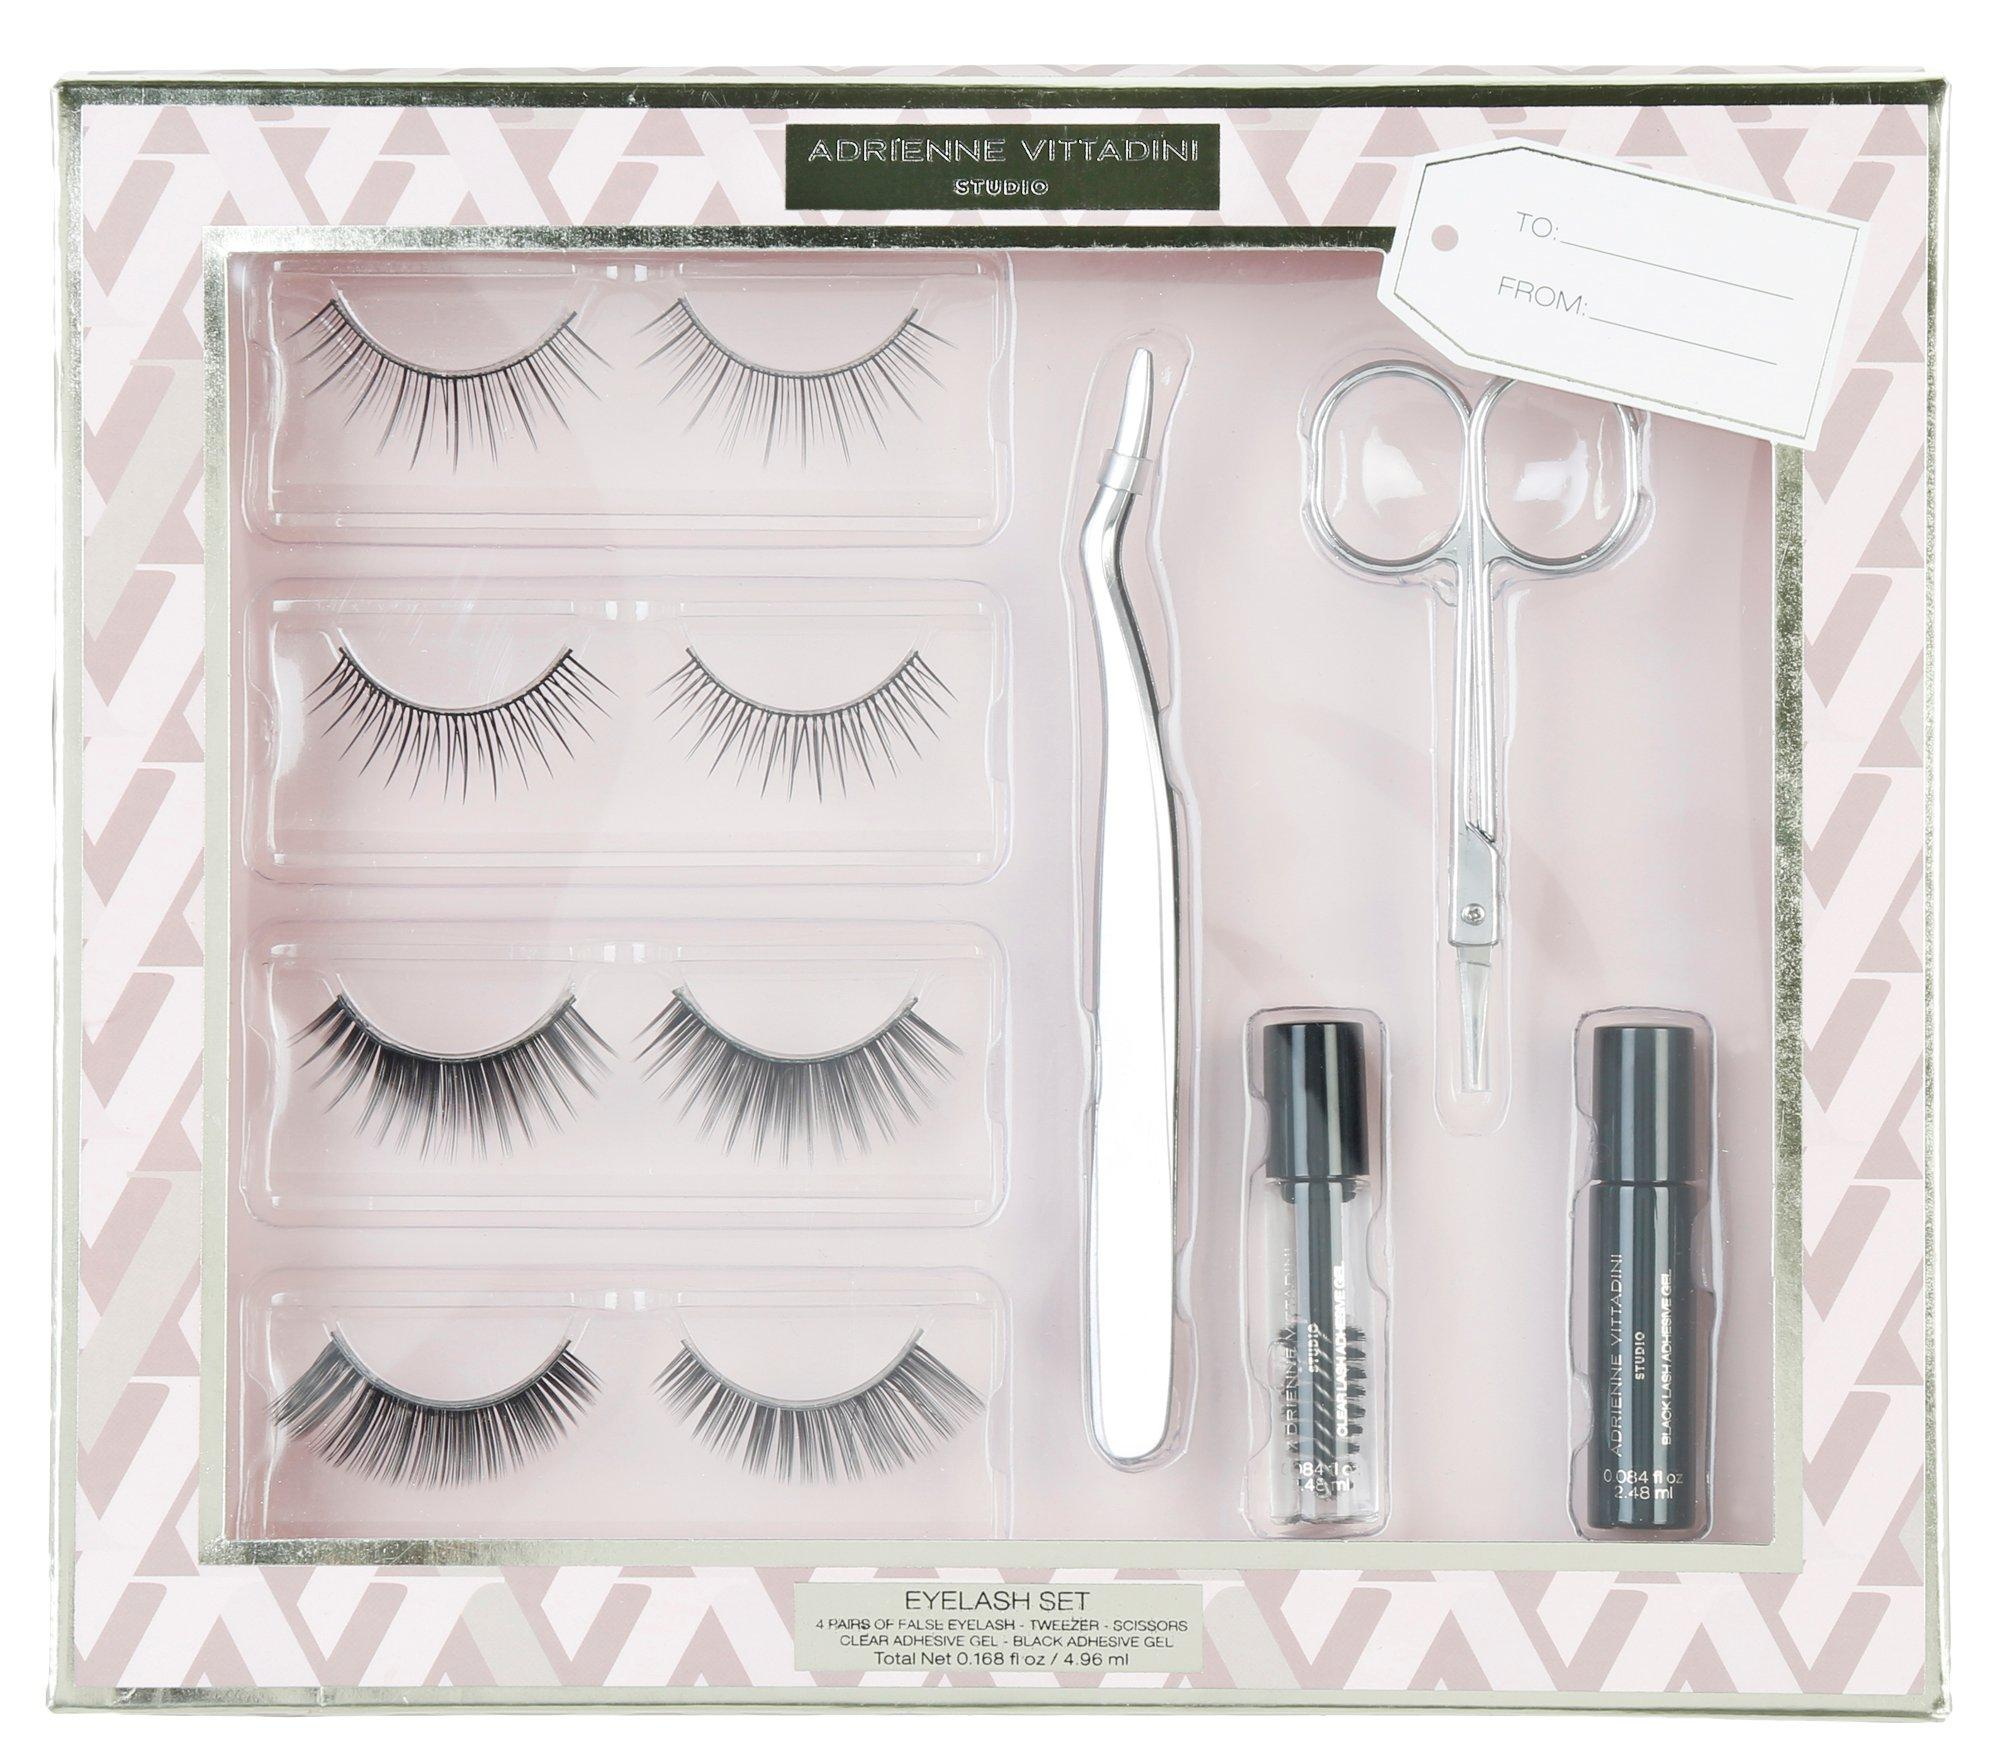 d6e7676a57b Eyelashes & Liner Set · You save 50%$7.99Compare at $16.00